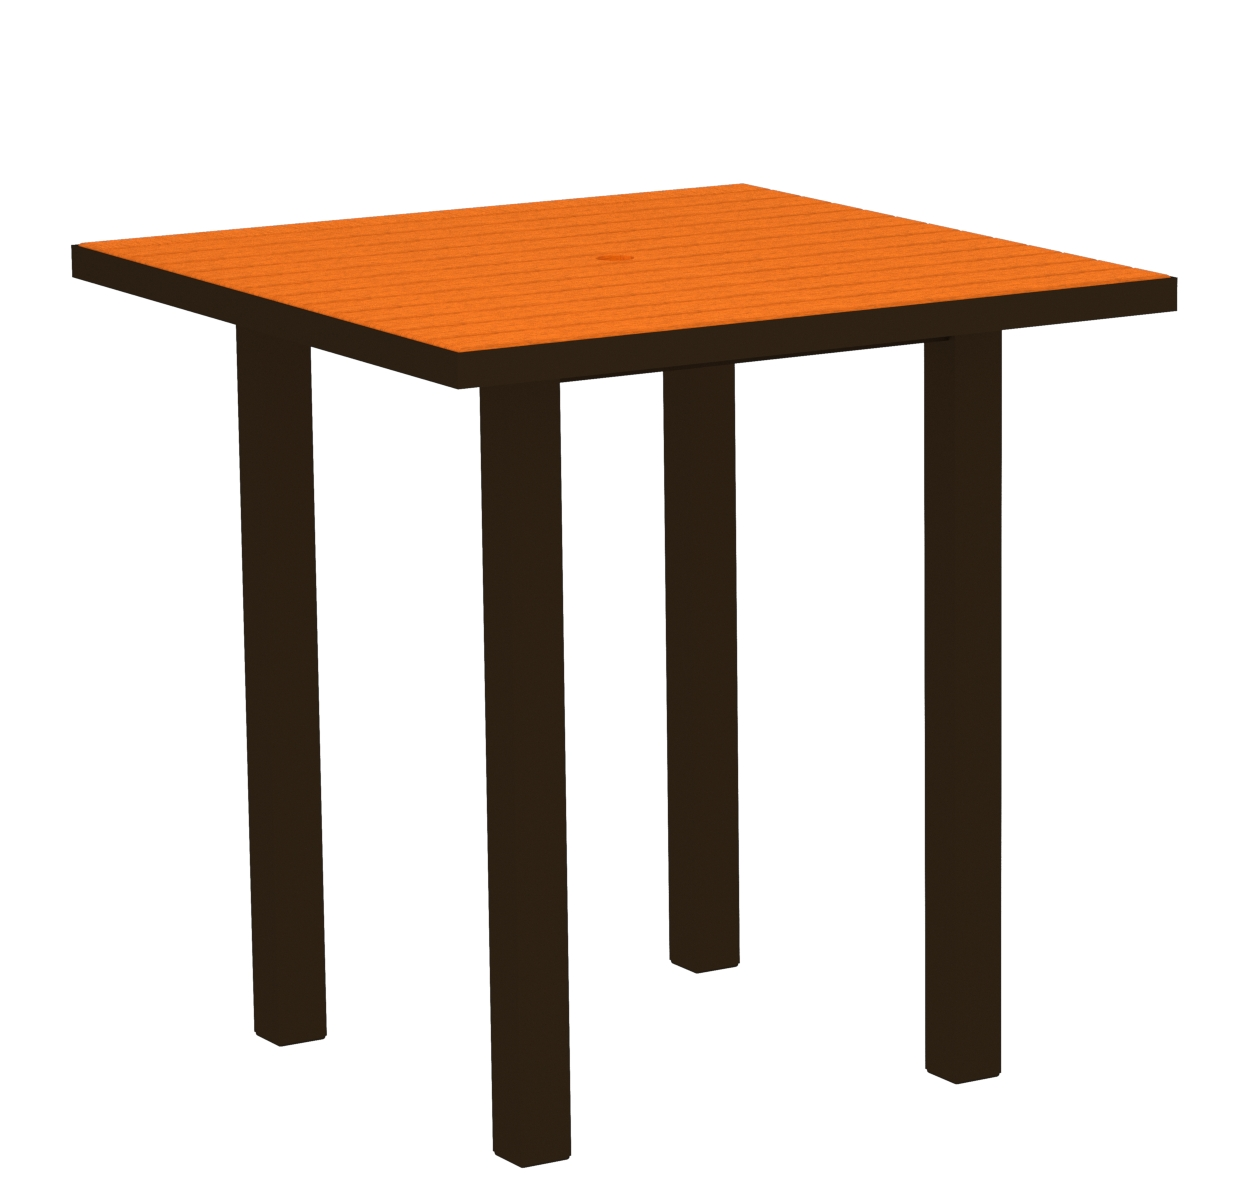 POLYWOOD ATR36-16TA Euro 36' Square Counter Table in Textured Bronze / Tangerine